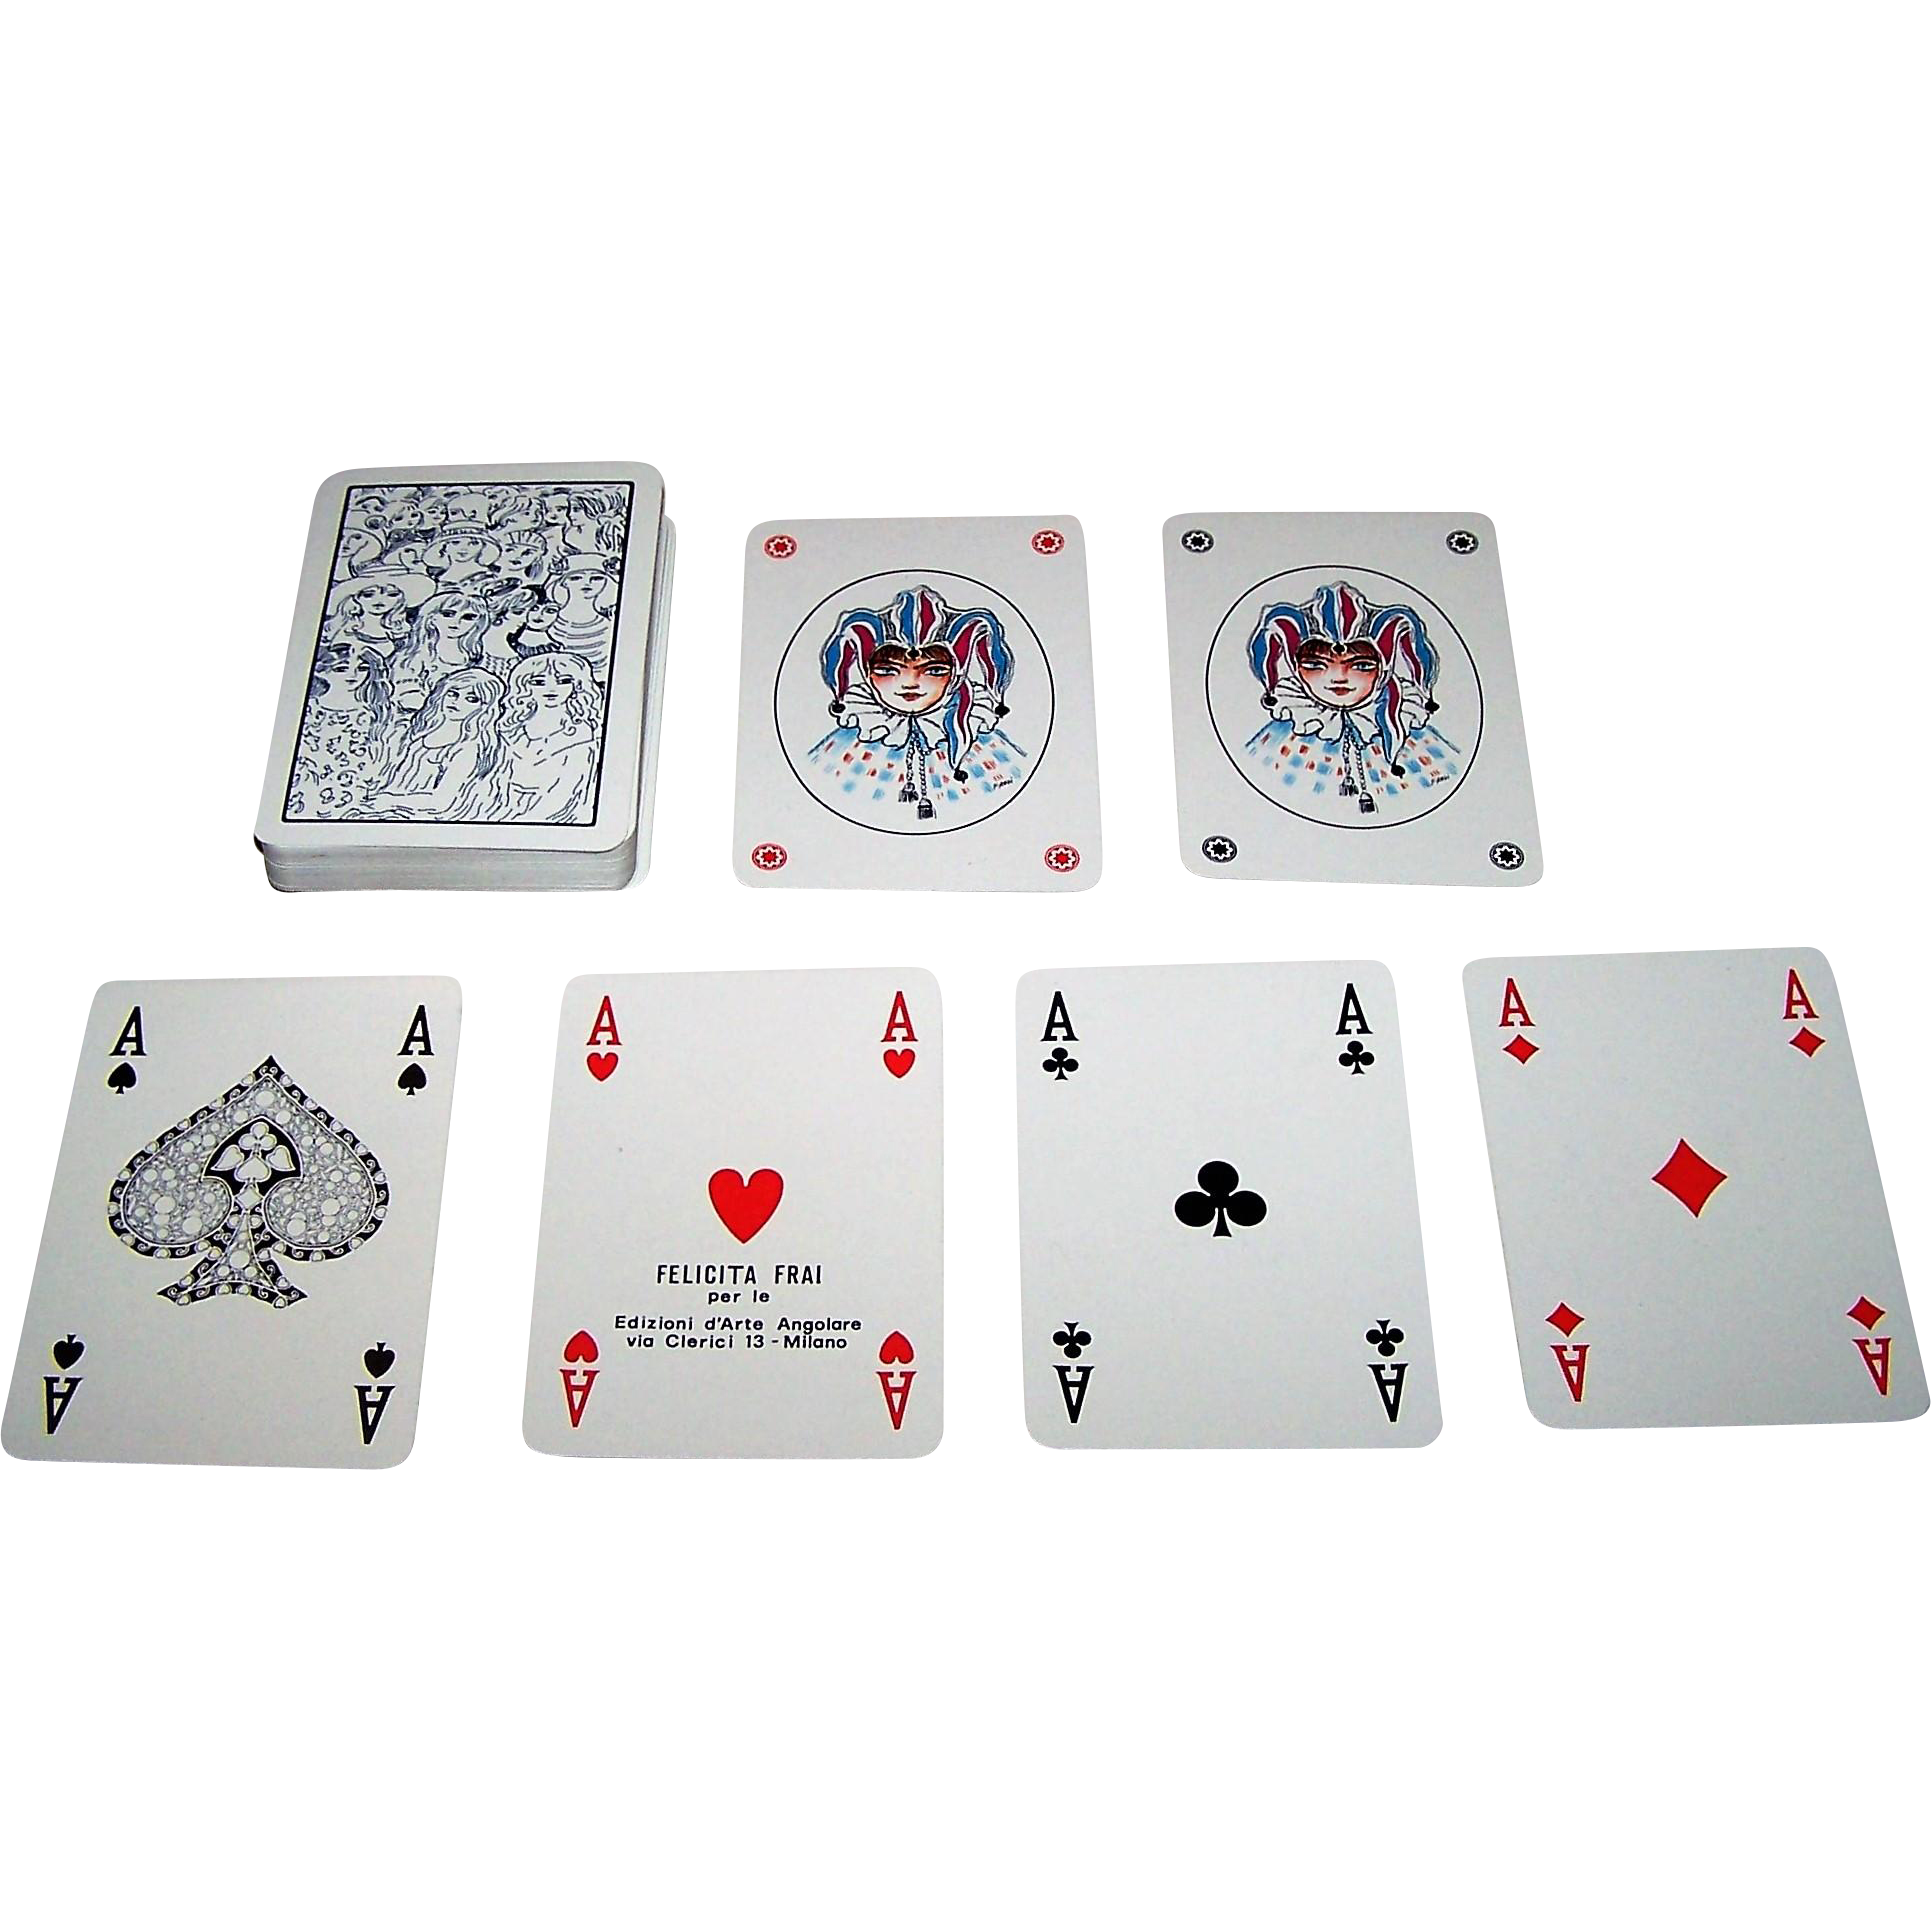 "Modiano ""Felicita Frai"" Playing Cards, Edizioni d'Arte Angolare Publisher, Ltd. Ed. (___/500), Felicita Frai Designs, c.1977"